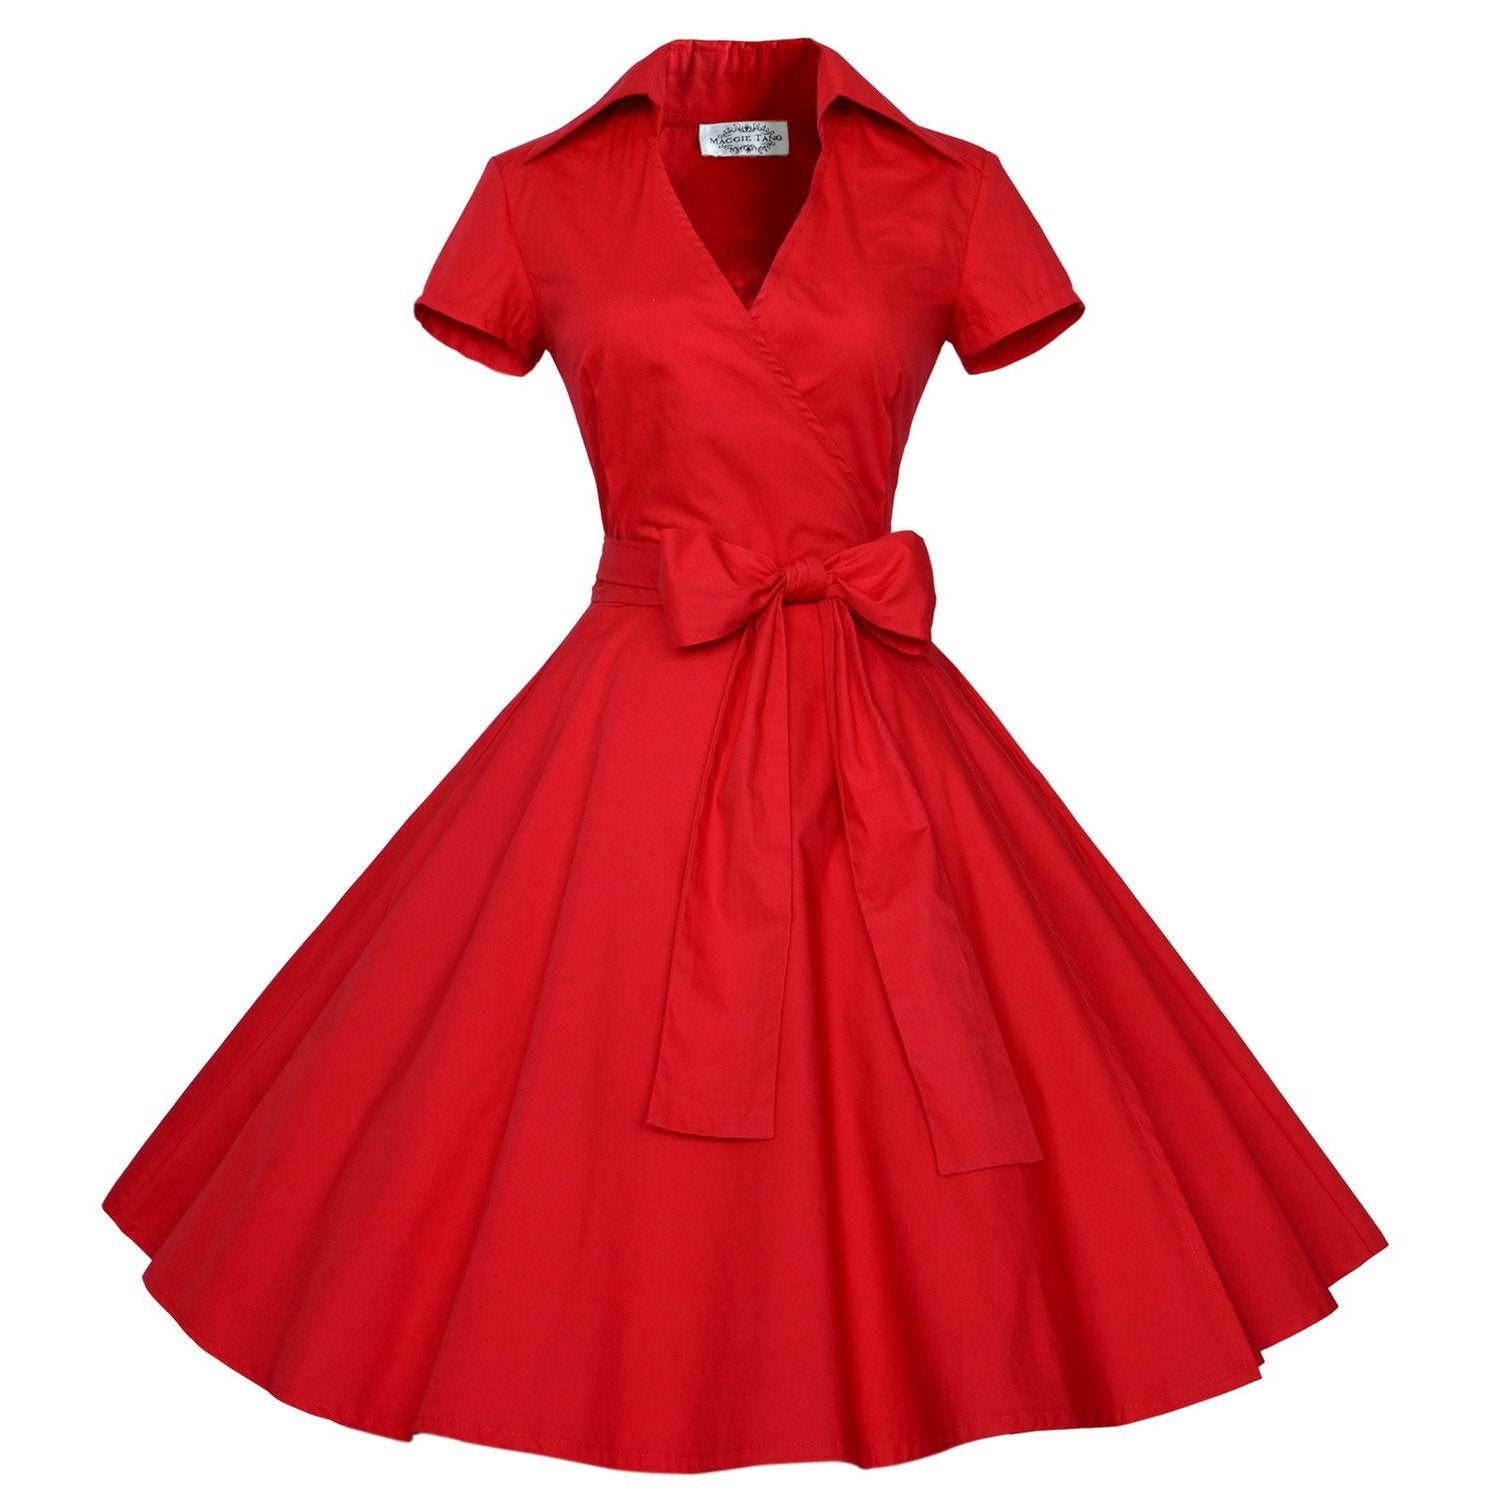 1960s Audrey Hepburn Style Rockabilly Ball Gown with Bow